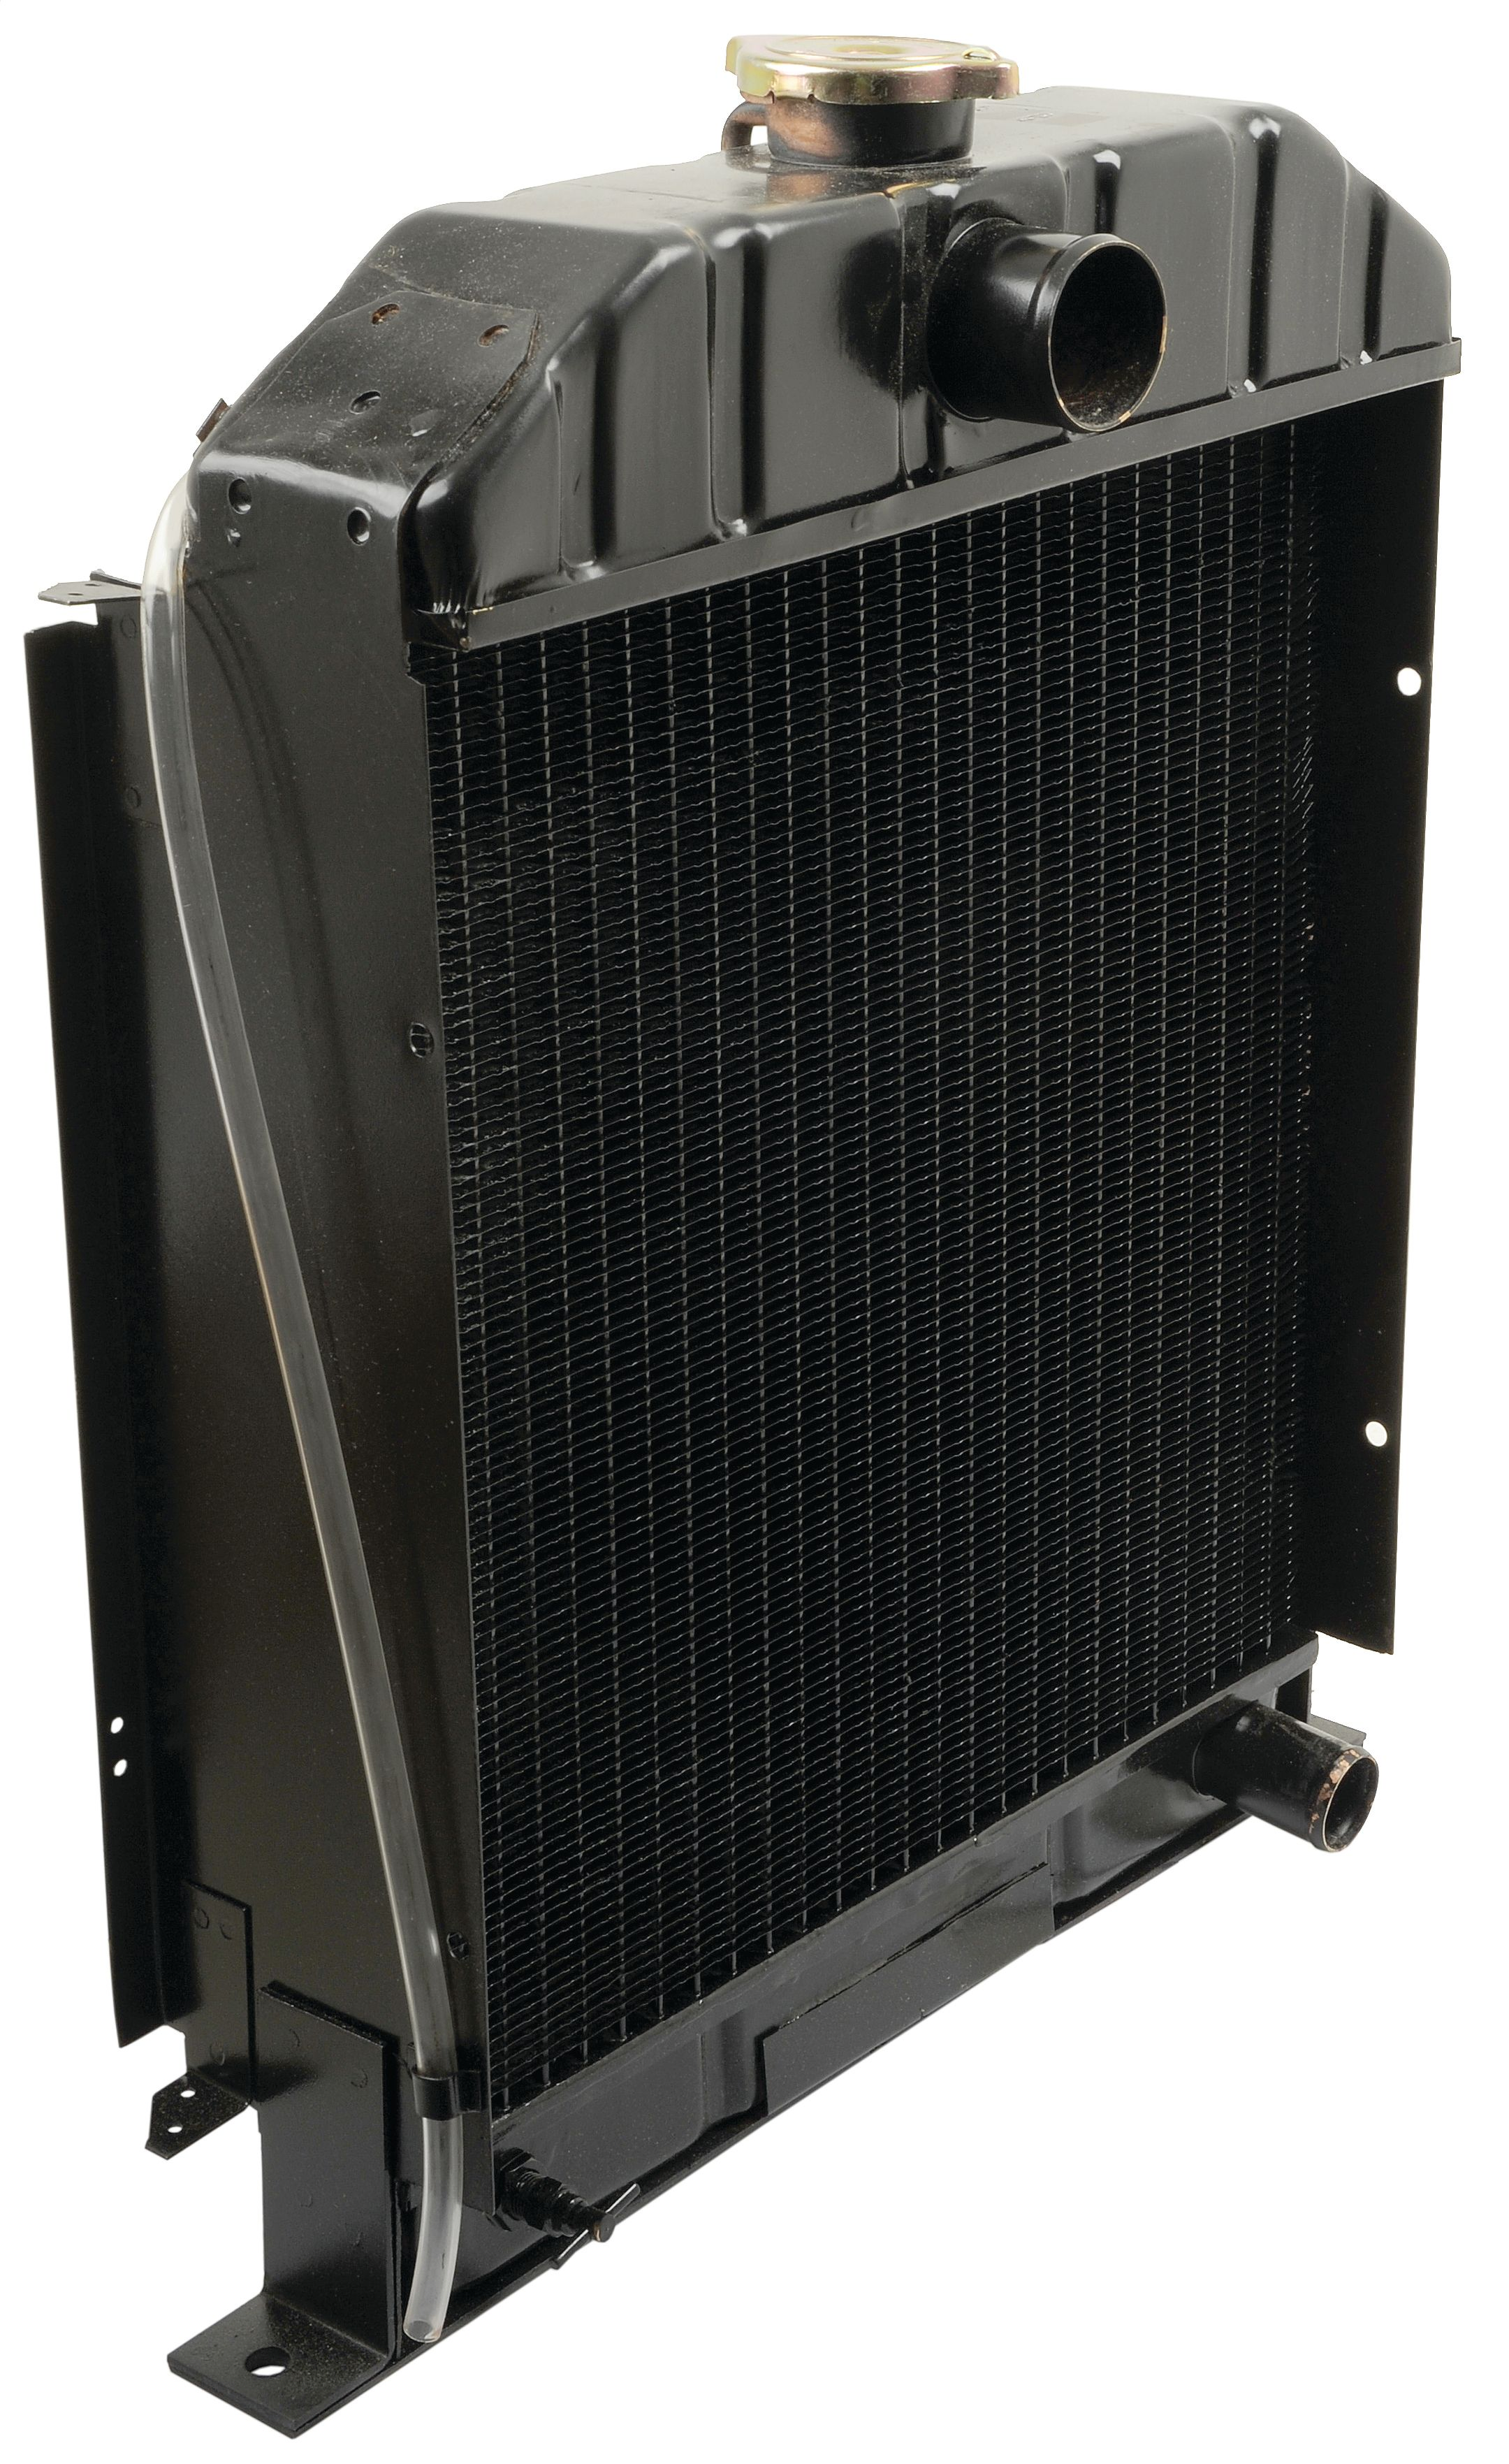 NUFFIELD RADIATOR - NUFFIELD